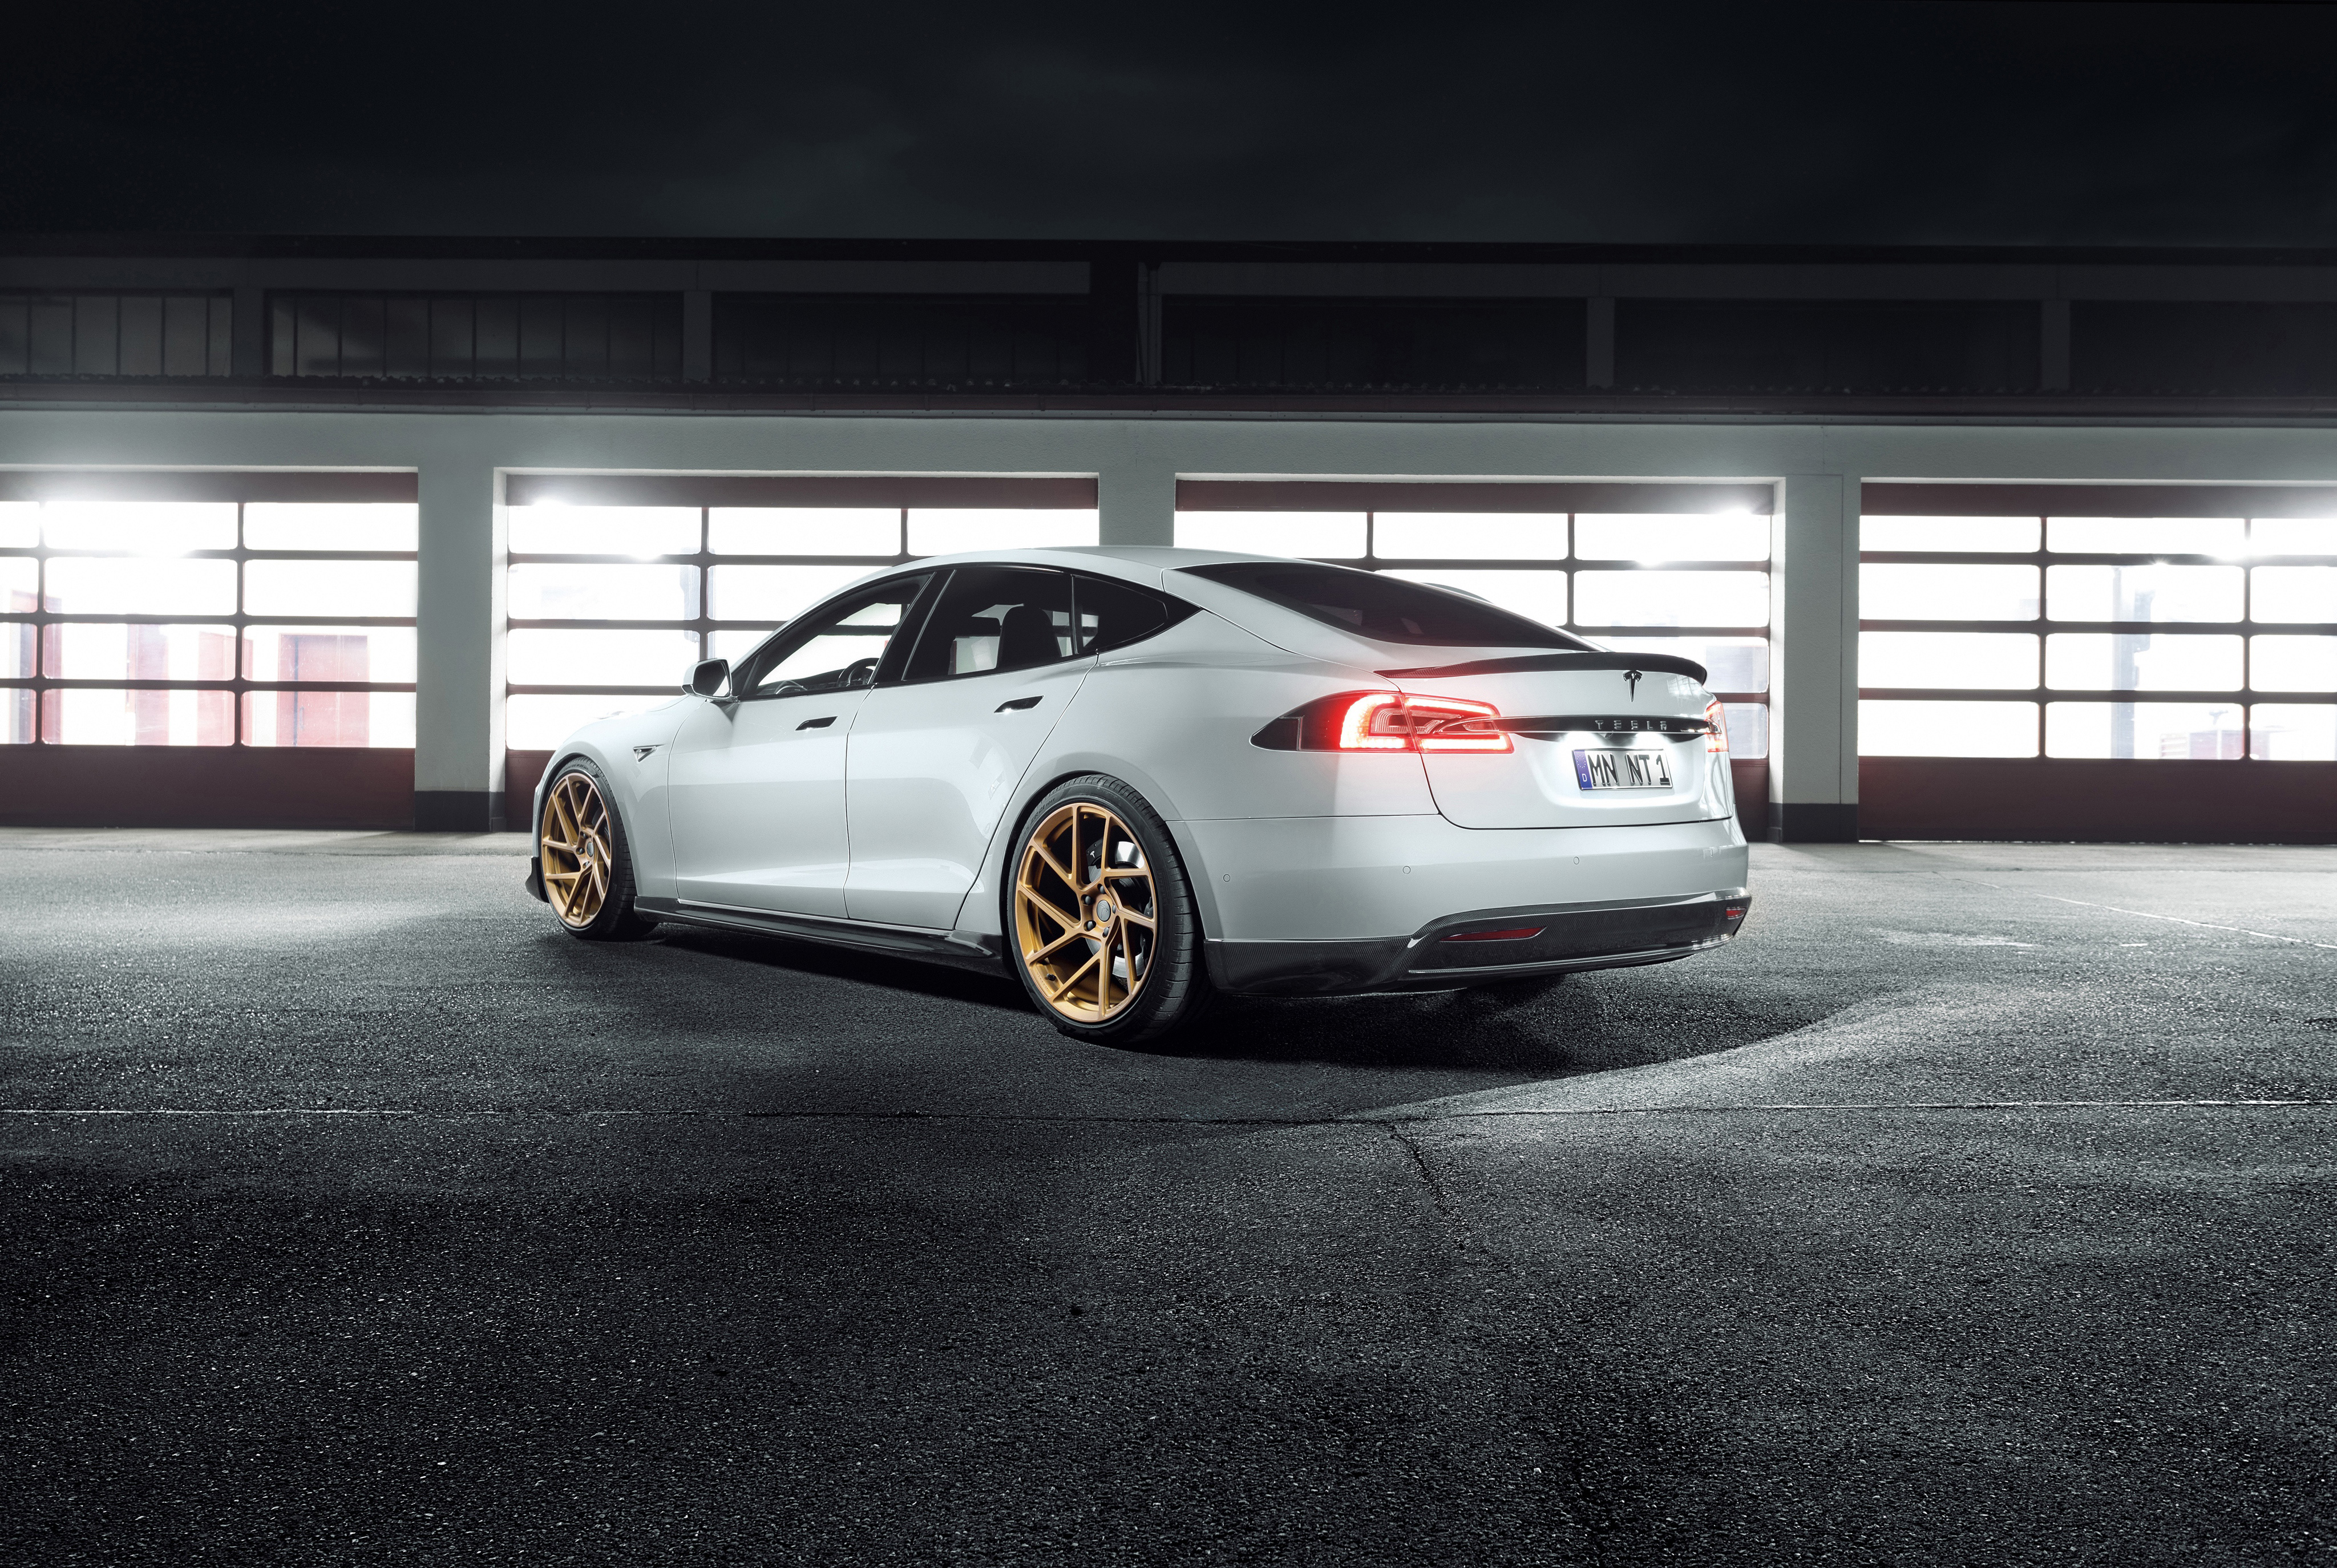 1920x1080 tesla model s by novitec laptop full hd 1080p hd 4k wallpapers images backgrounds - Tesla wallpaper android ...